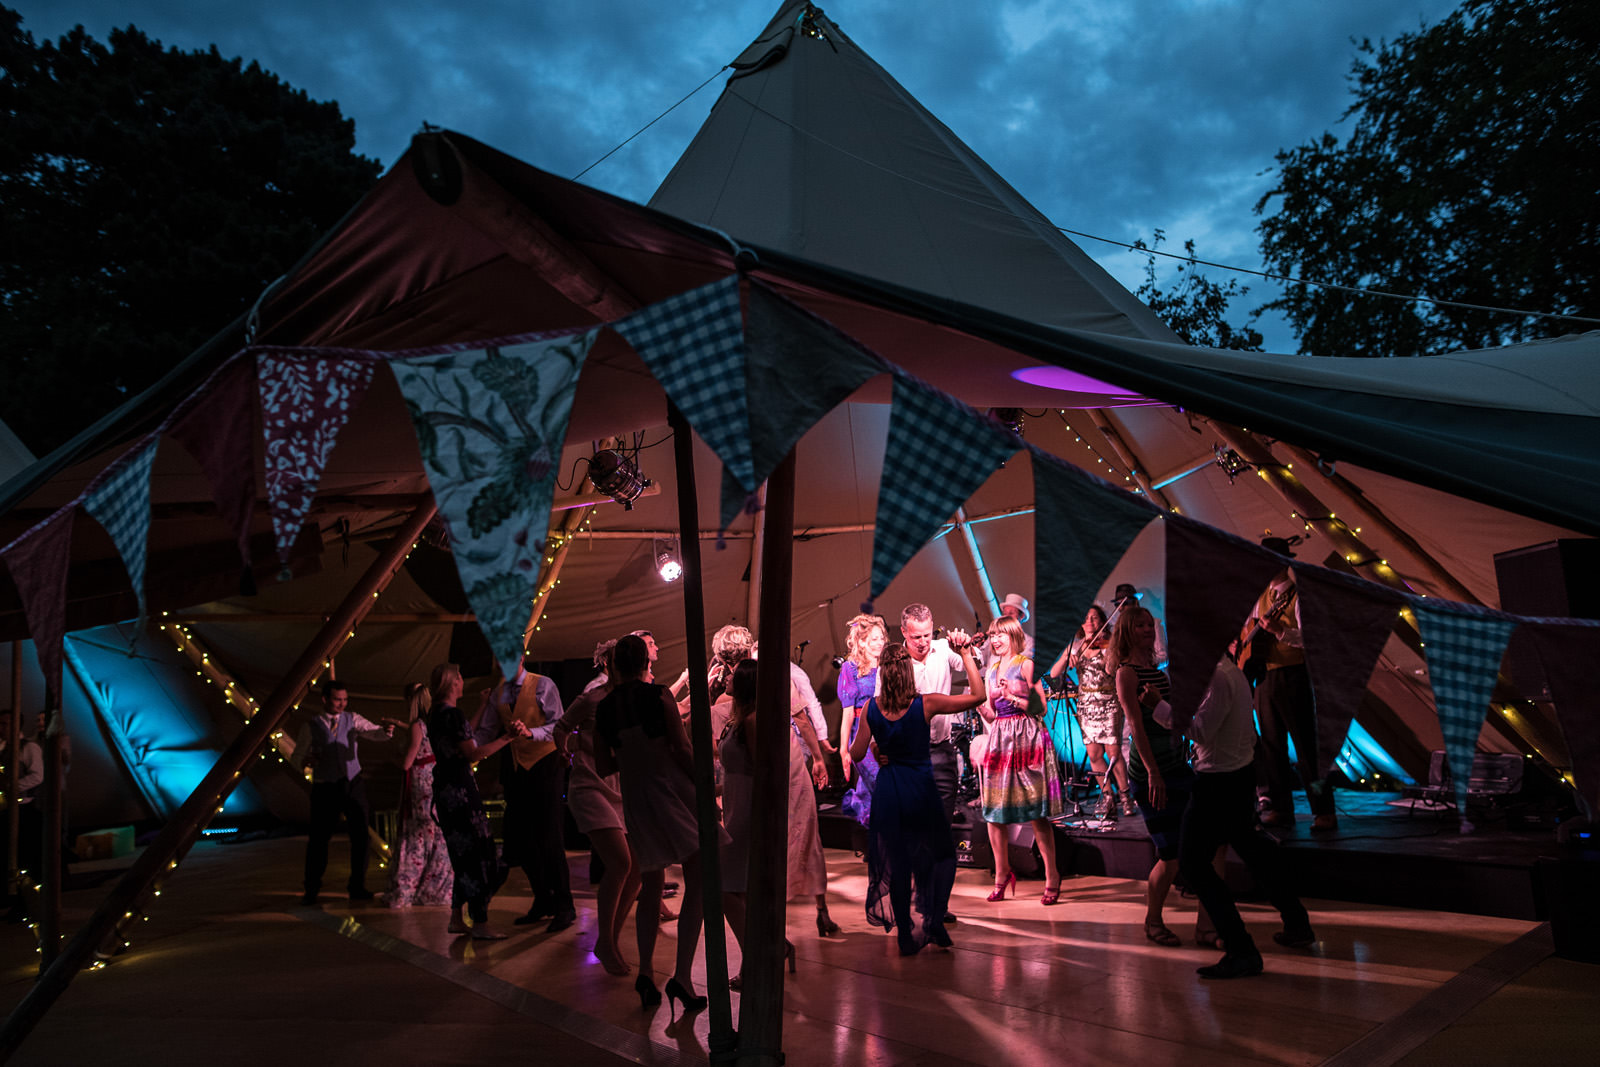 Guests dance in a Tipi Marquee with bunting